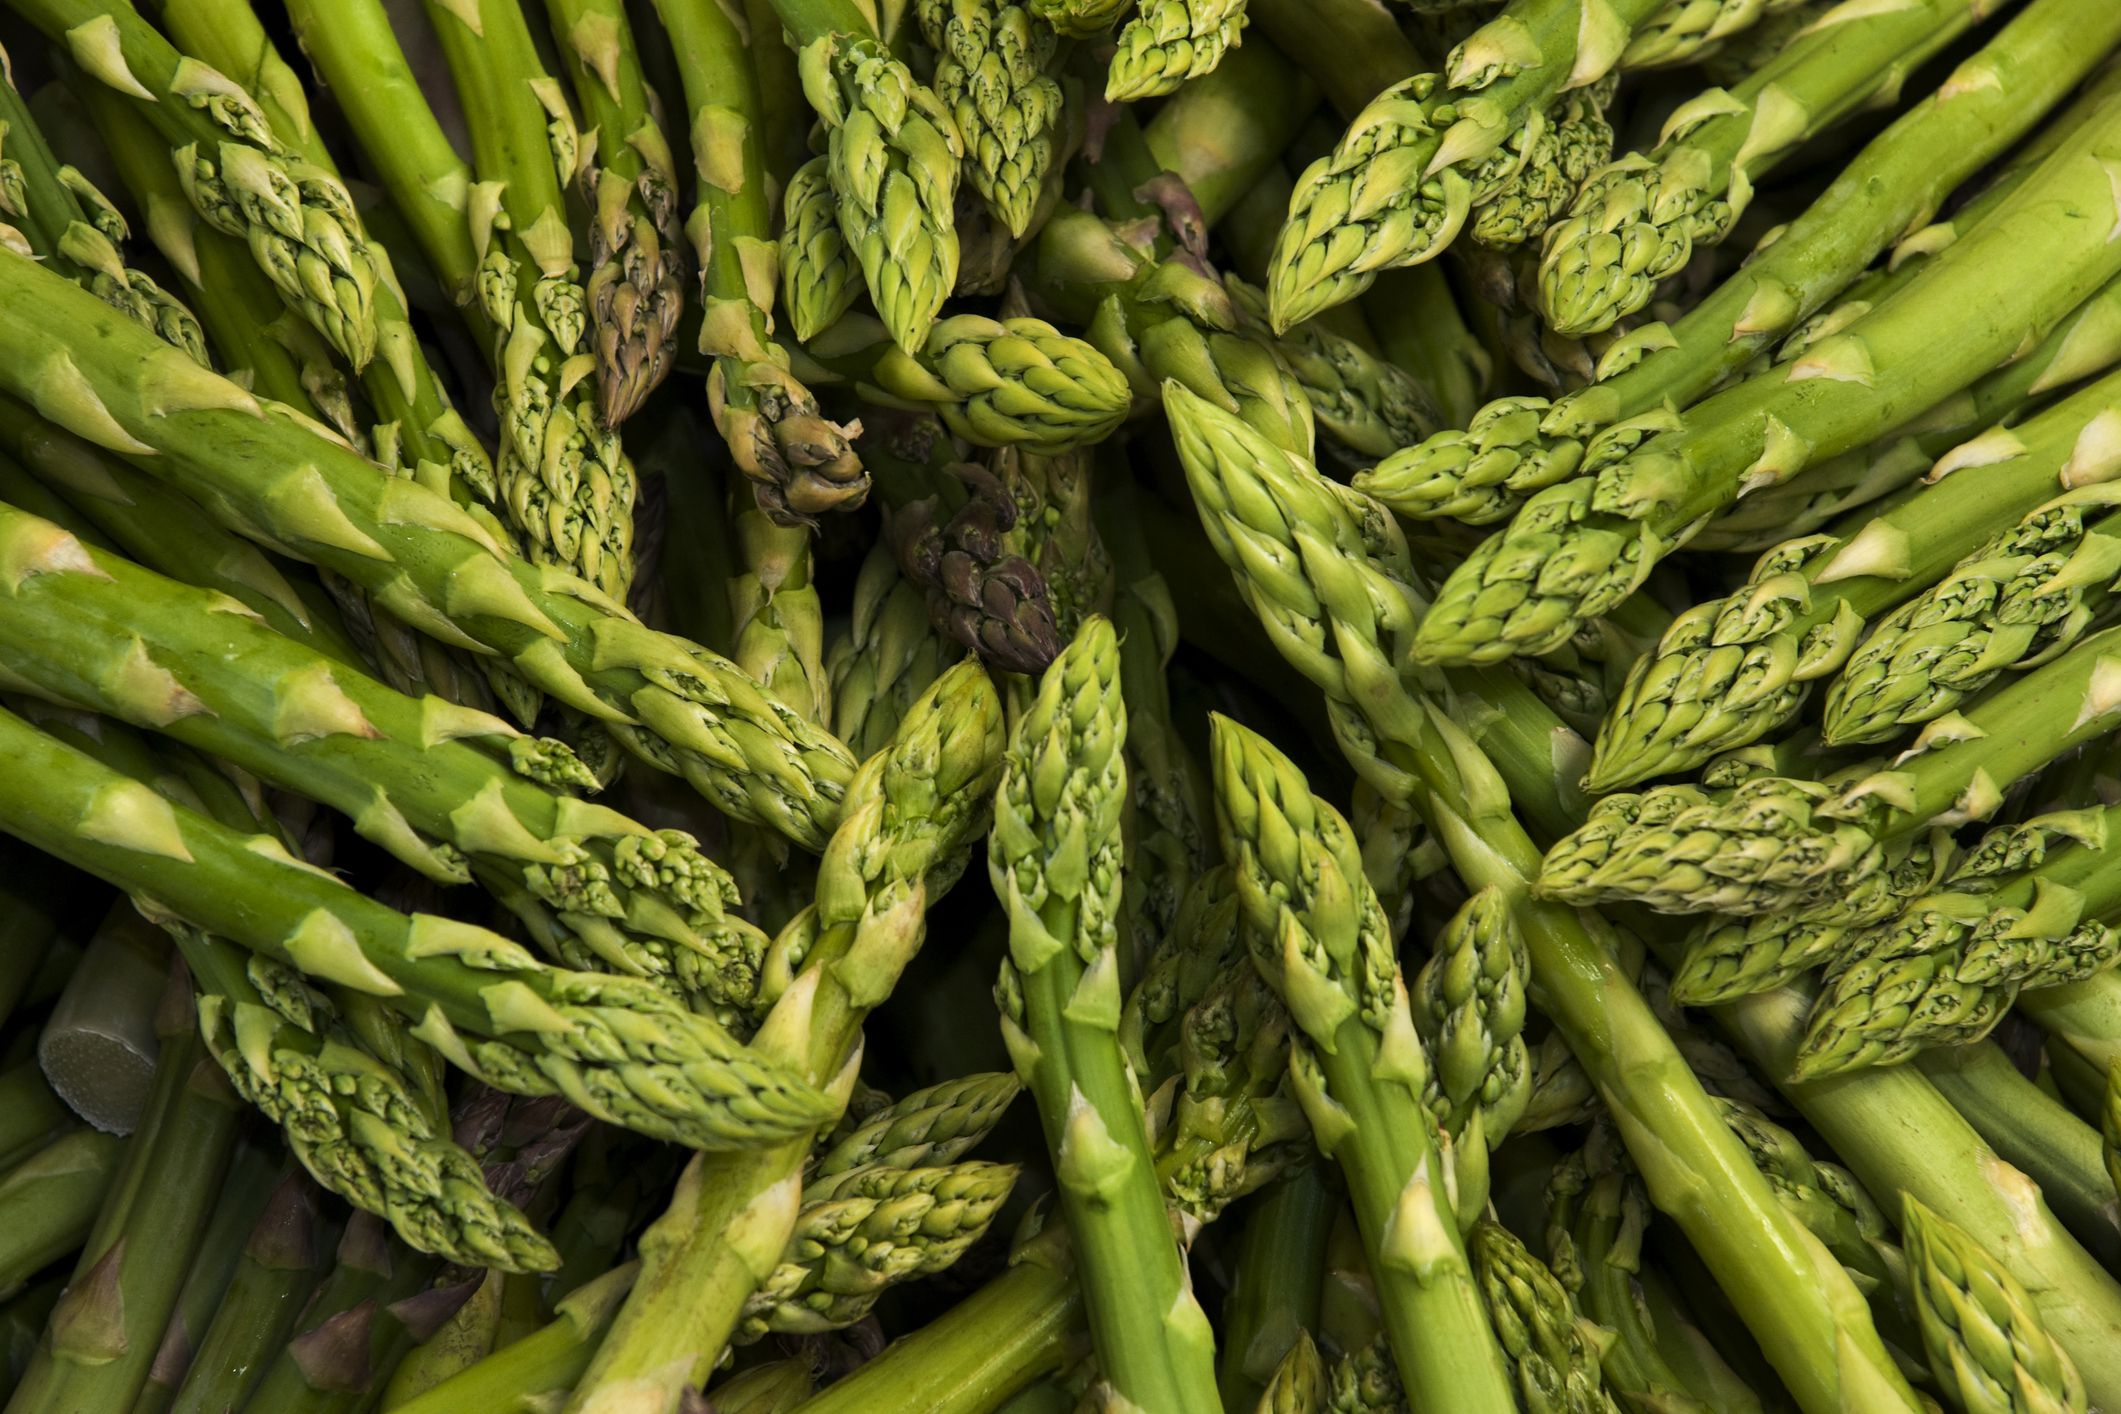 Asparagus Nutrition Facts: Calories and Health Benefits